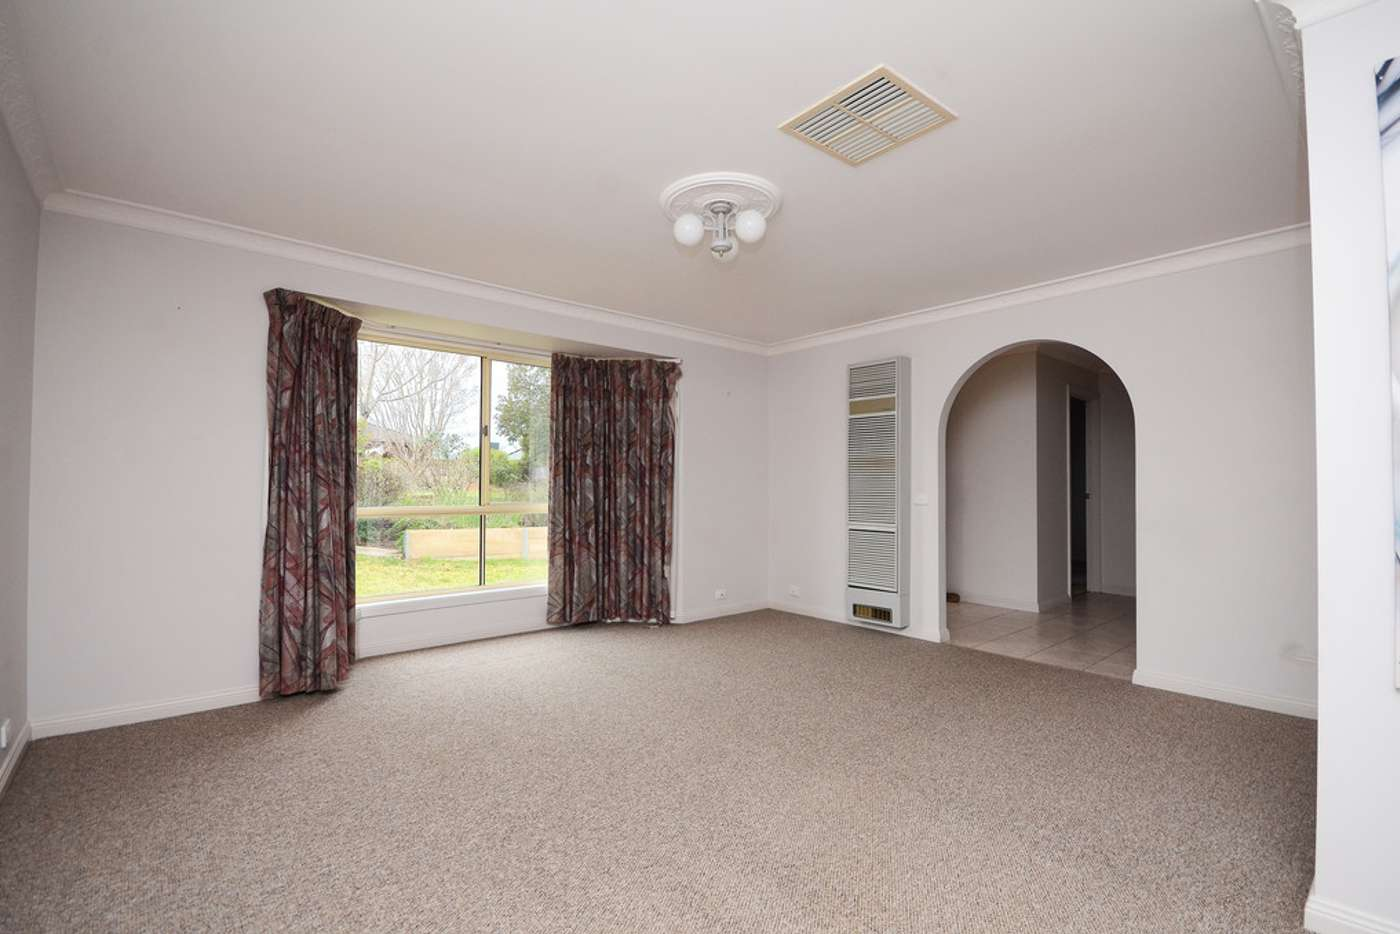 Seventh view of Homely house listing, 2 Canary Court, Wodonga VIC 3690